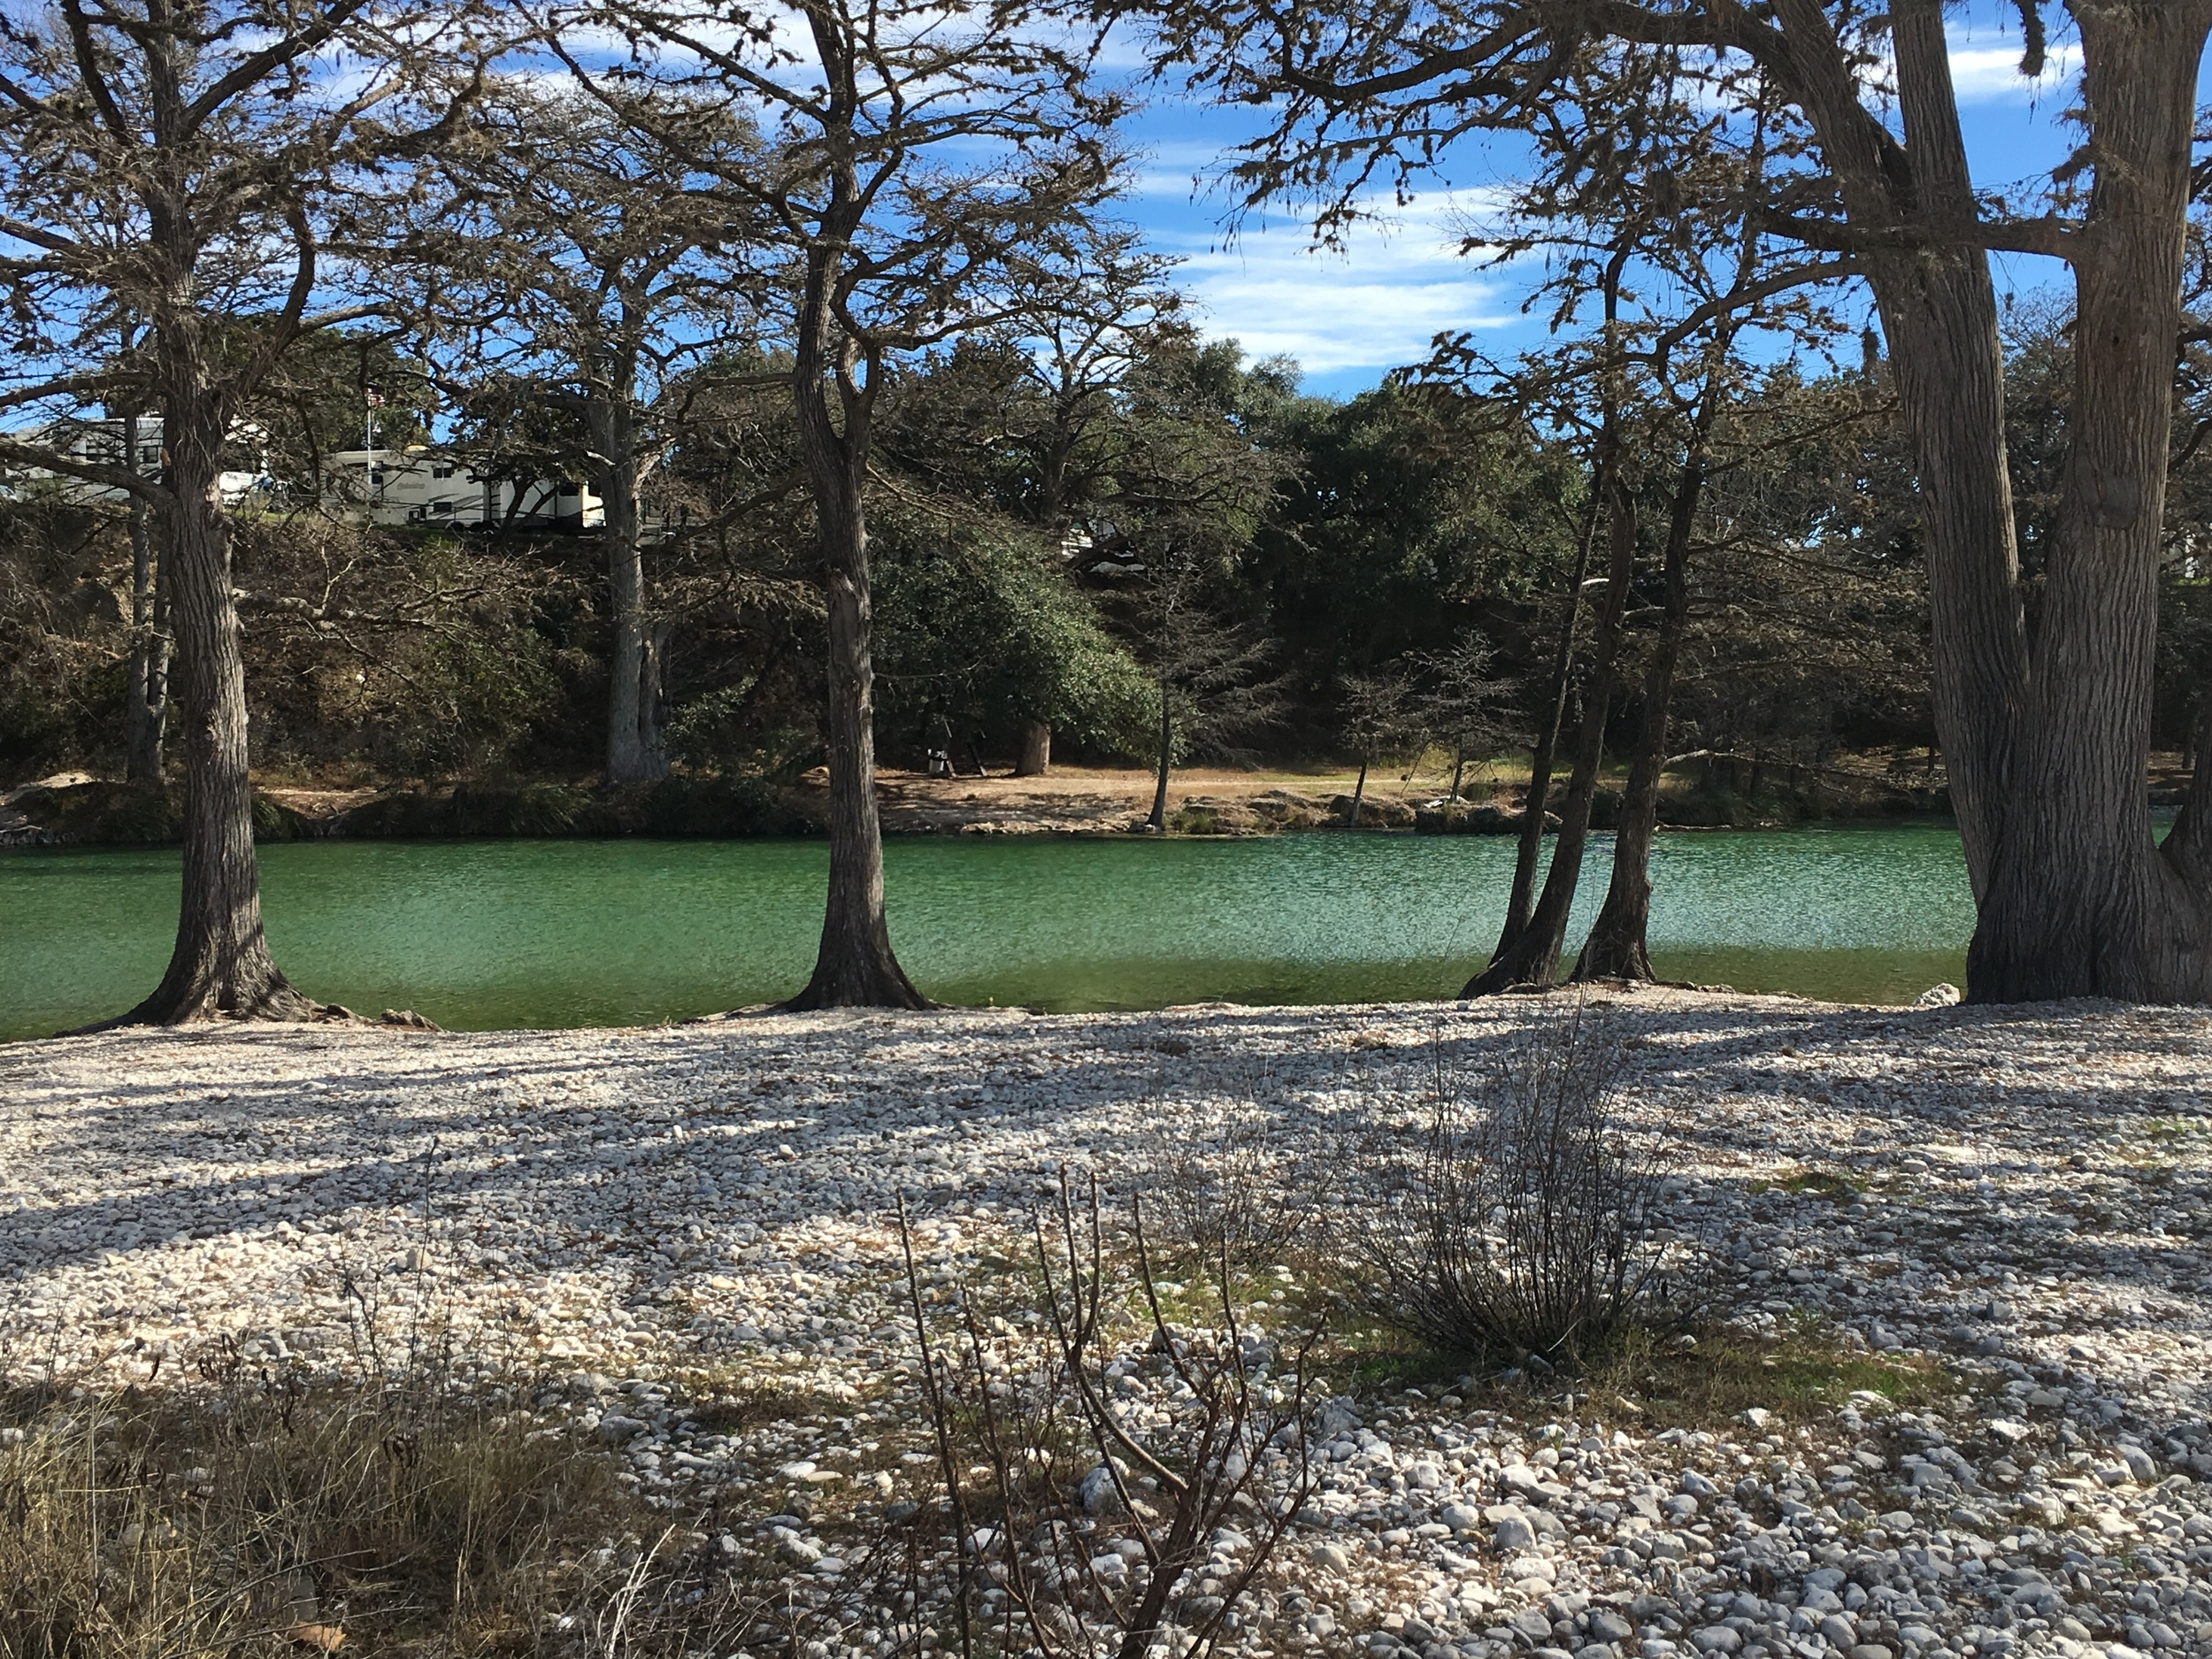 The waters of the Rio Frio are crystal clear and emerald green.